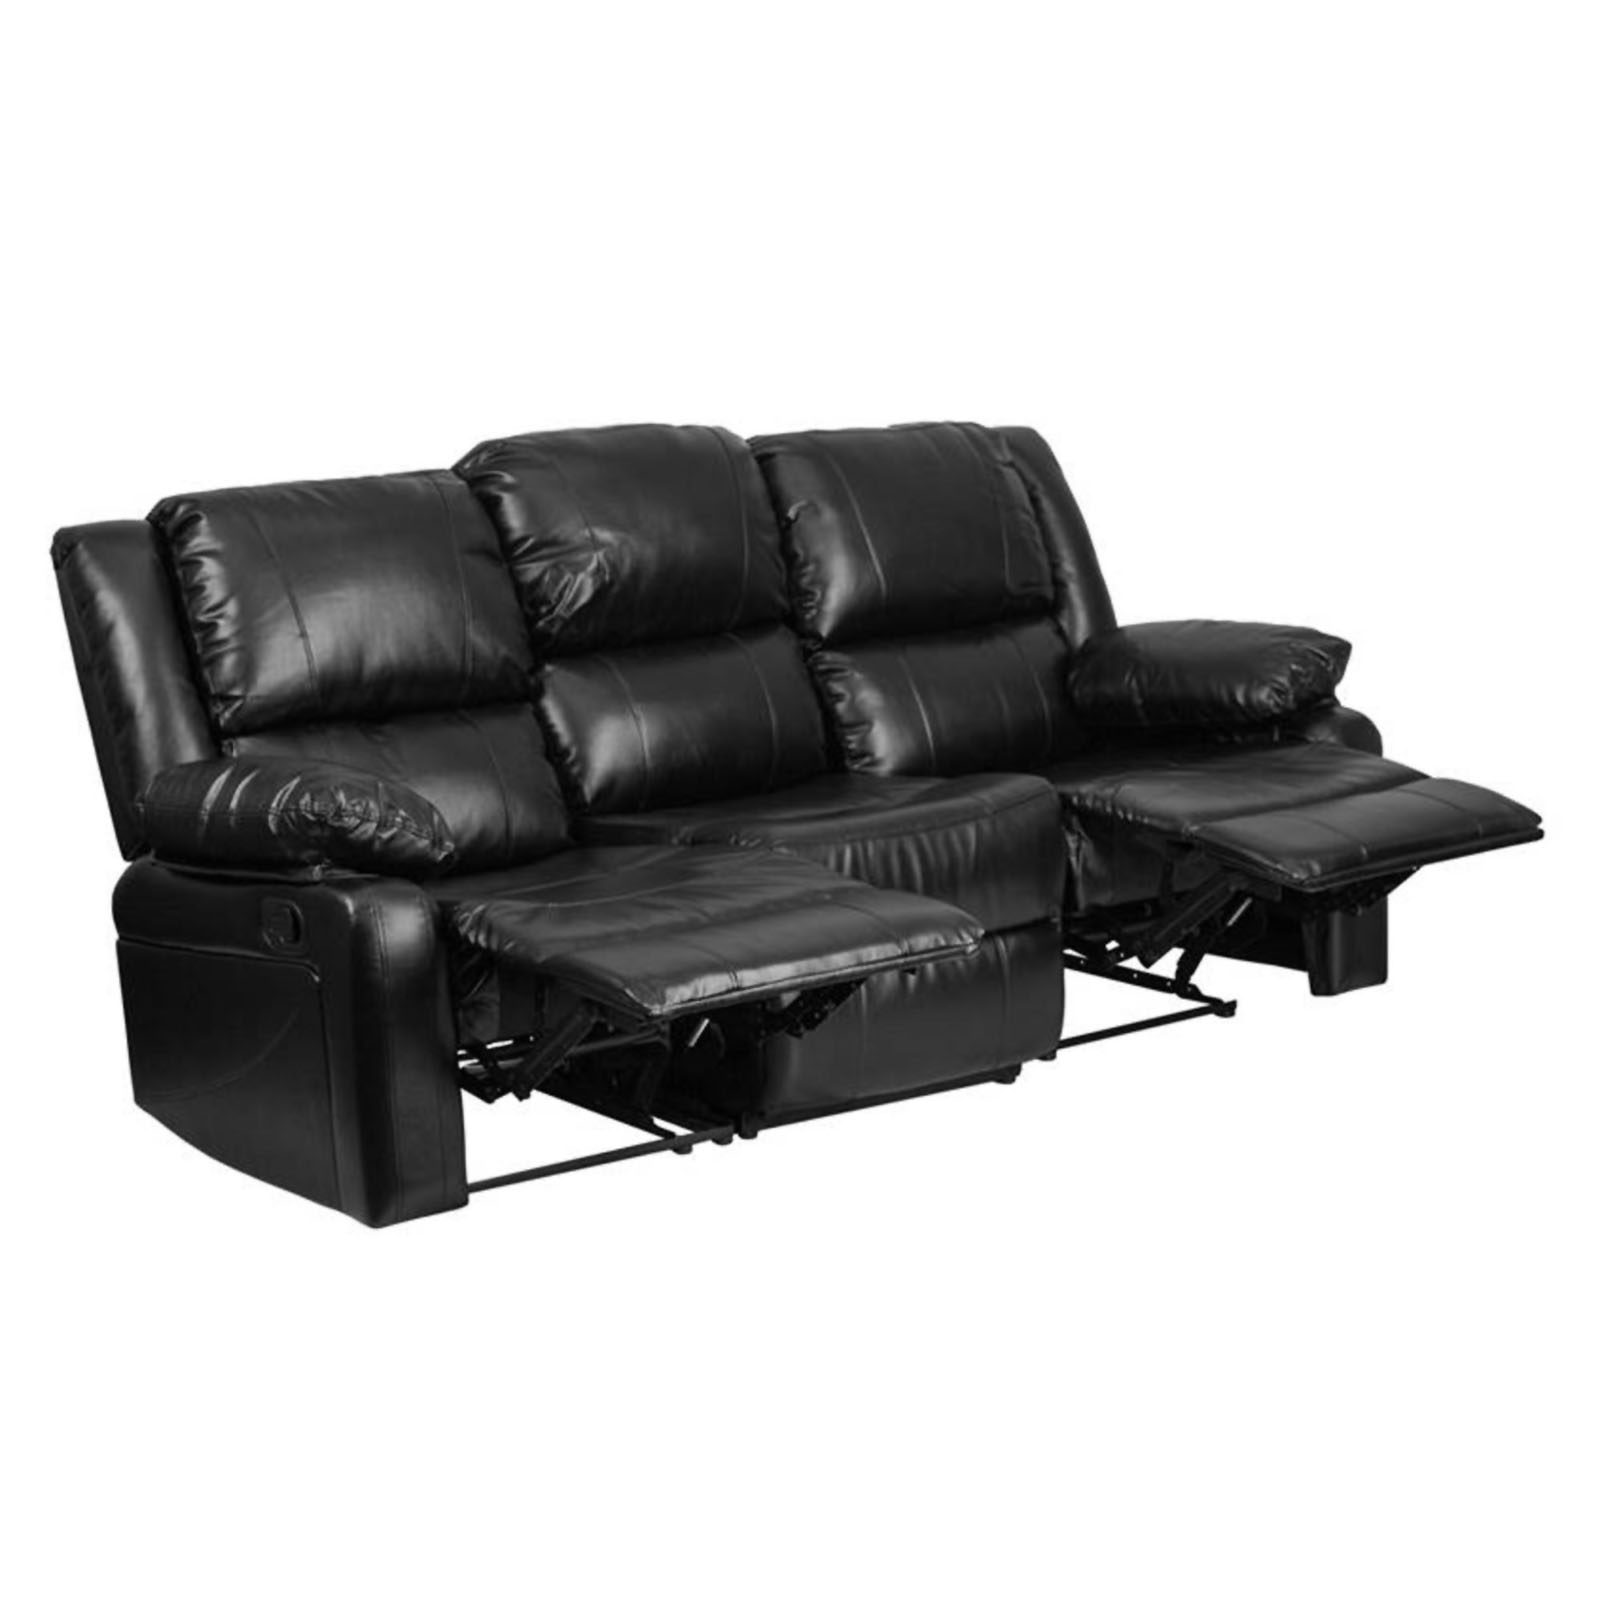 leather sofa bed sears clearance sale sectional sofas flash furniture black marketplace